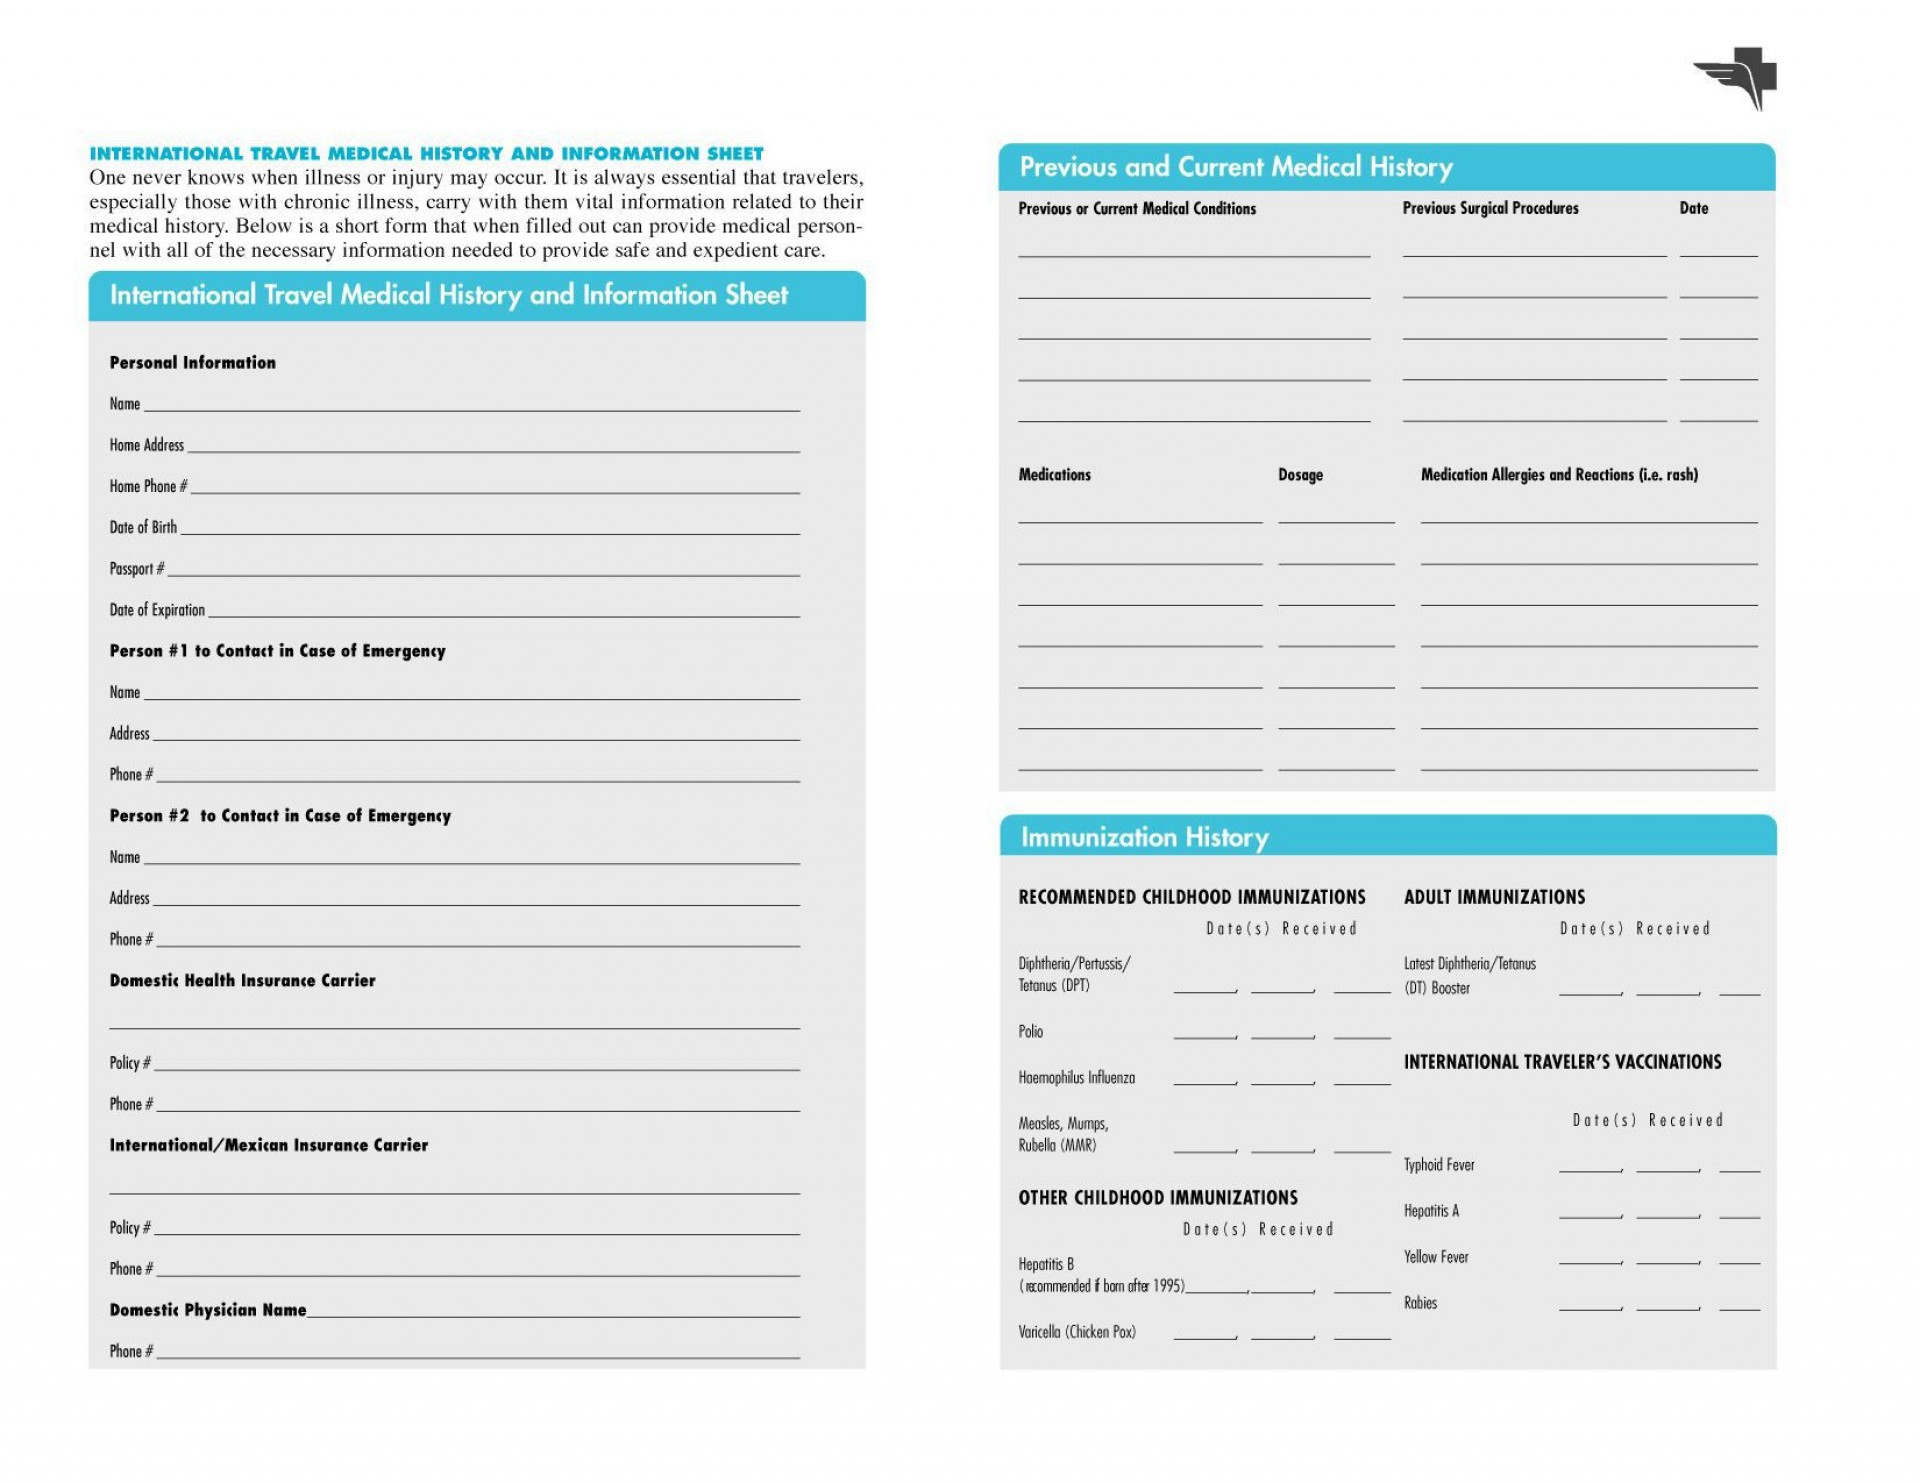 004 Magnificent Family Medical History Template High Definition  Questionnaire Free Excel1920